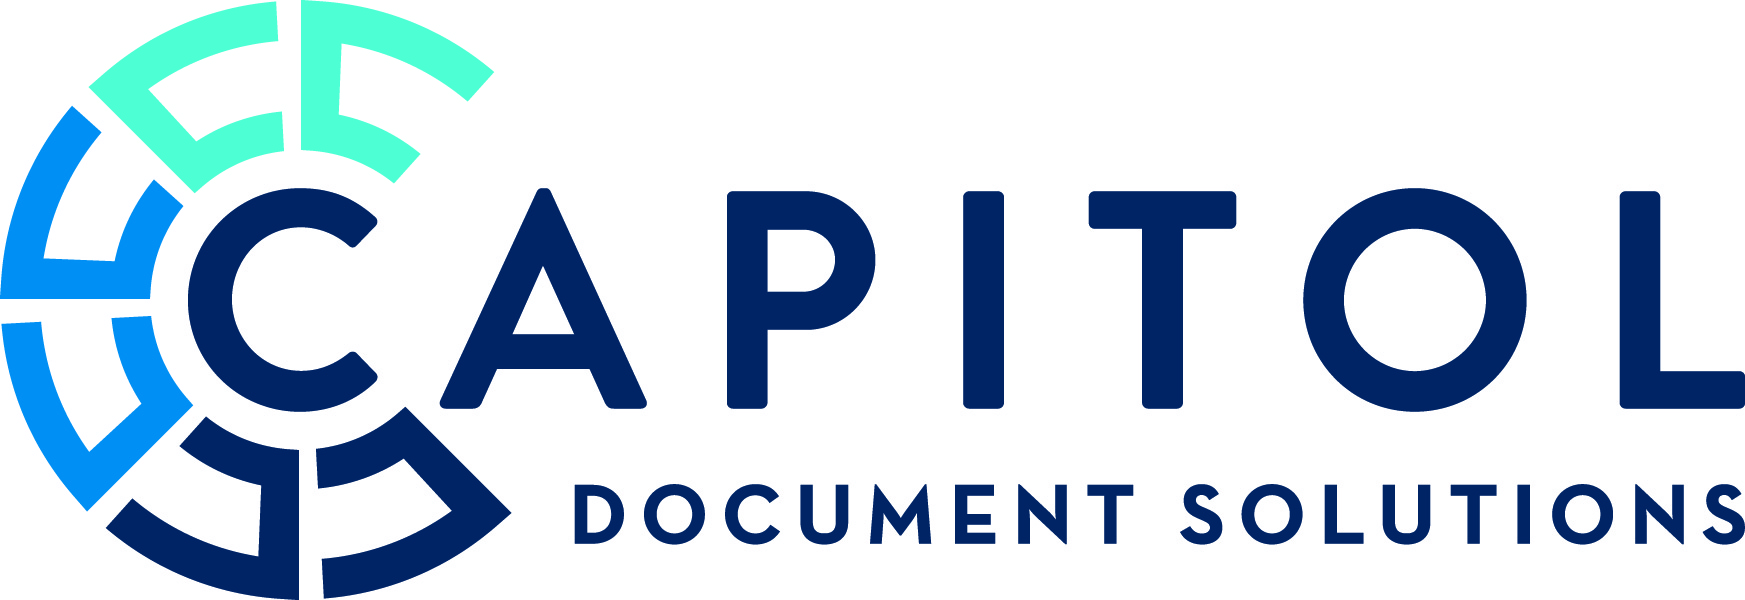 Capitol Document Solutions NEW.jpg